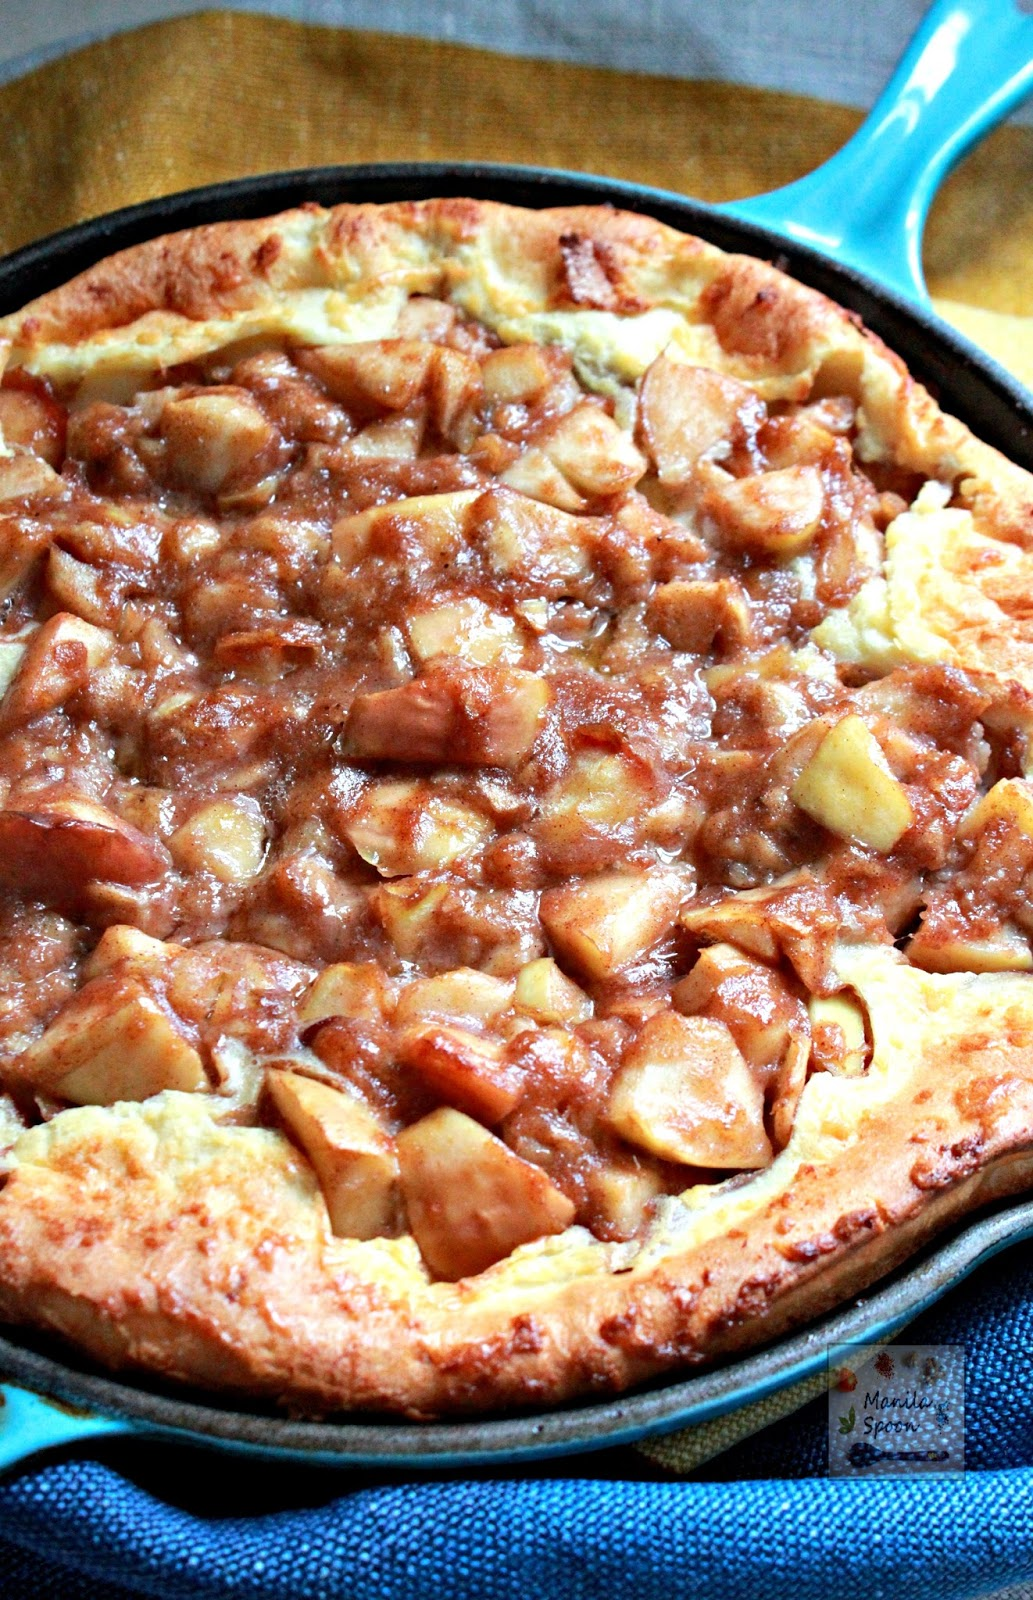 Delicious and easy to make Dutch Baby Pancake loaded with cinnamon spiced Apples and Bananas! So yummy and perfect for breakfast or brunch!